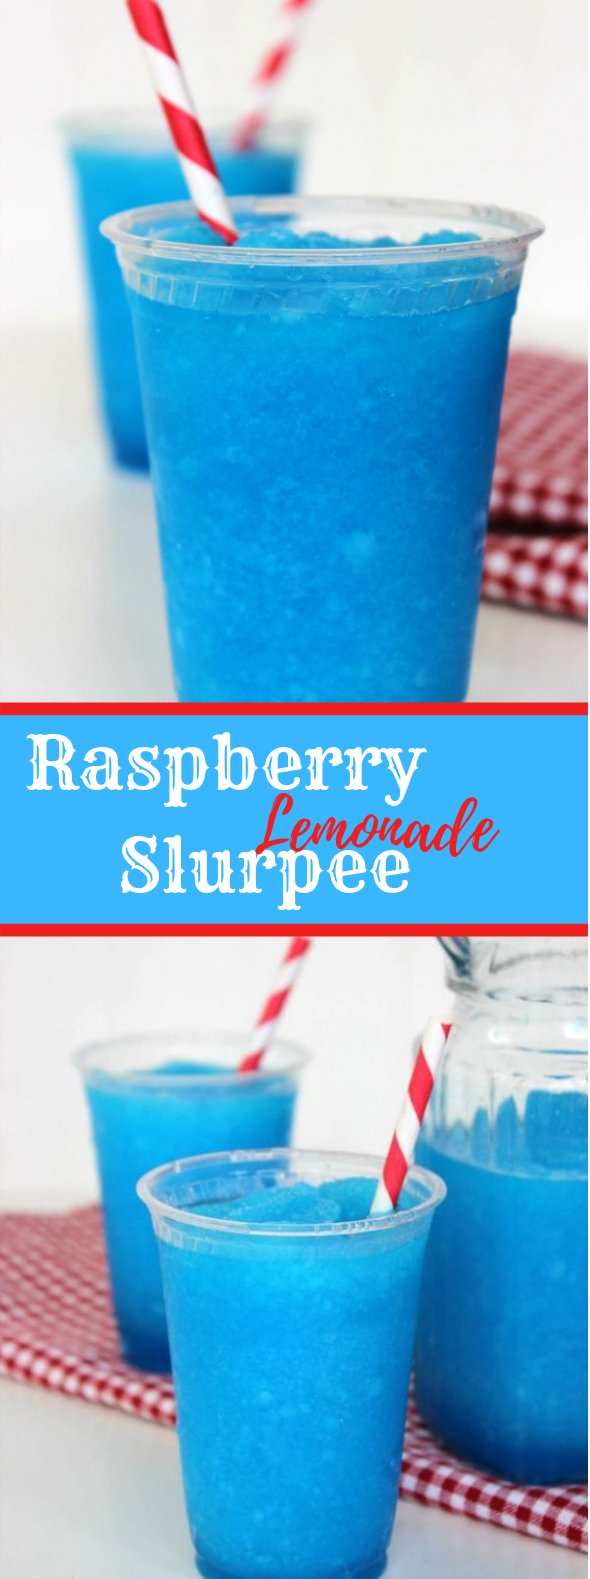 RASPBERRY LEMONADE SLURPEE RECIPE #Summer #FreshDrink